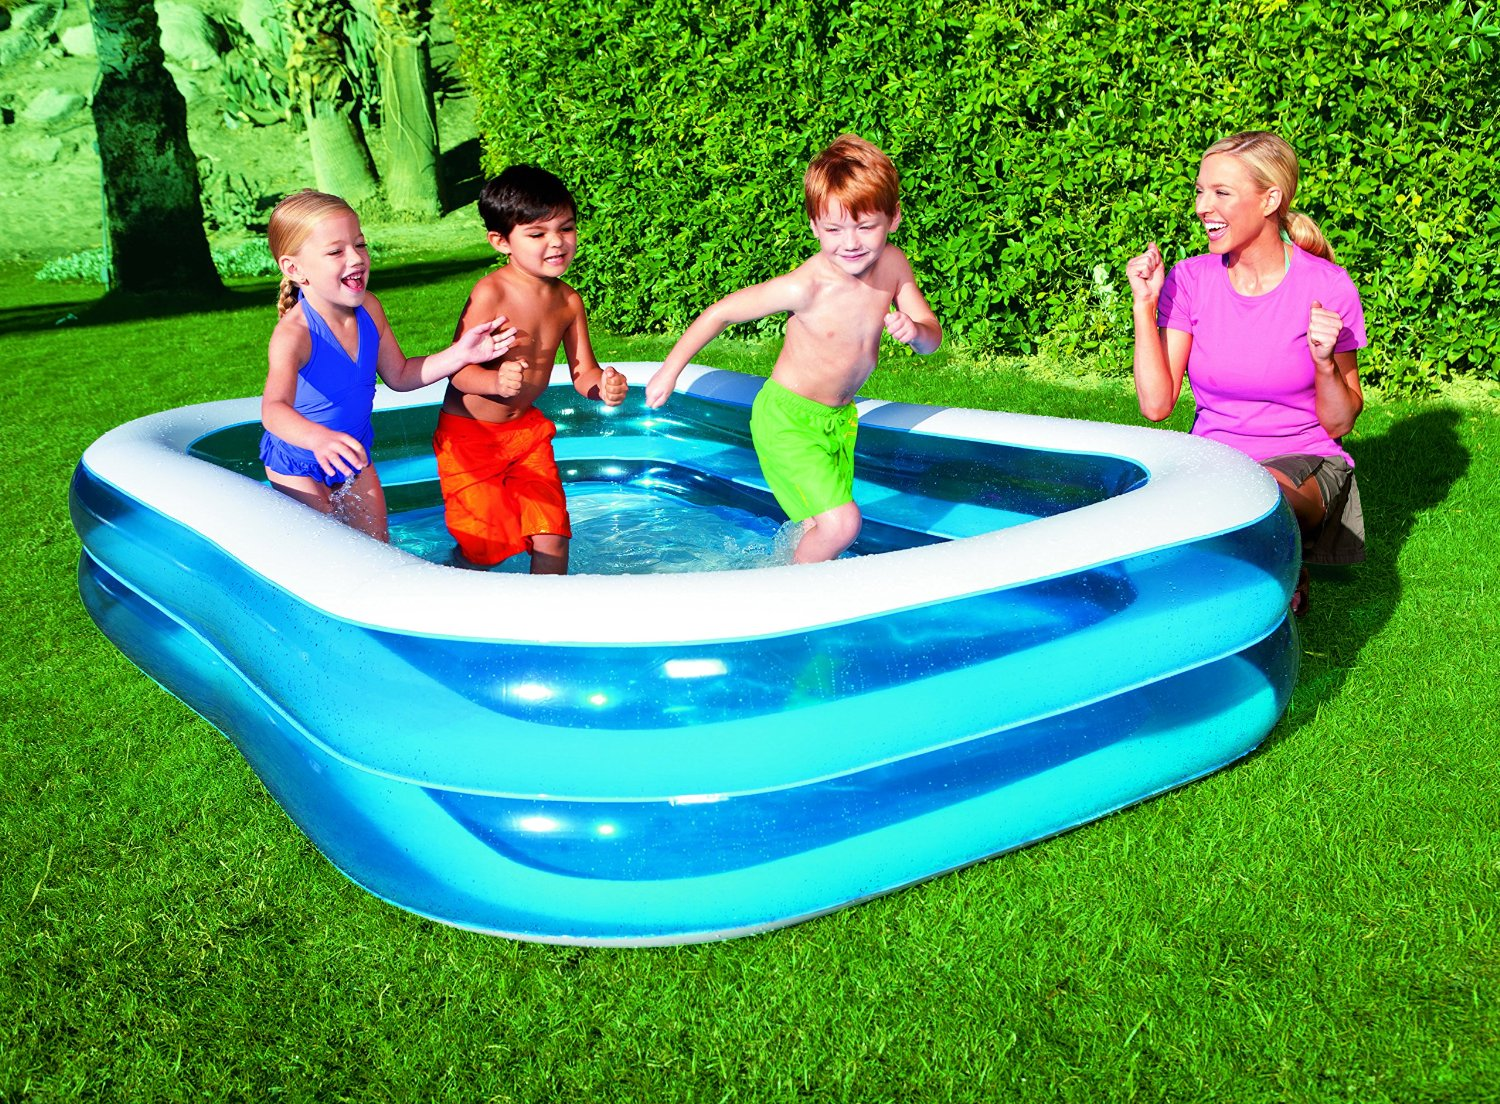 oferta piscina familiar bestway 29 95 chollos